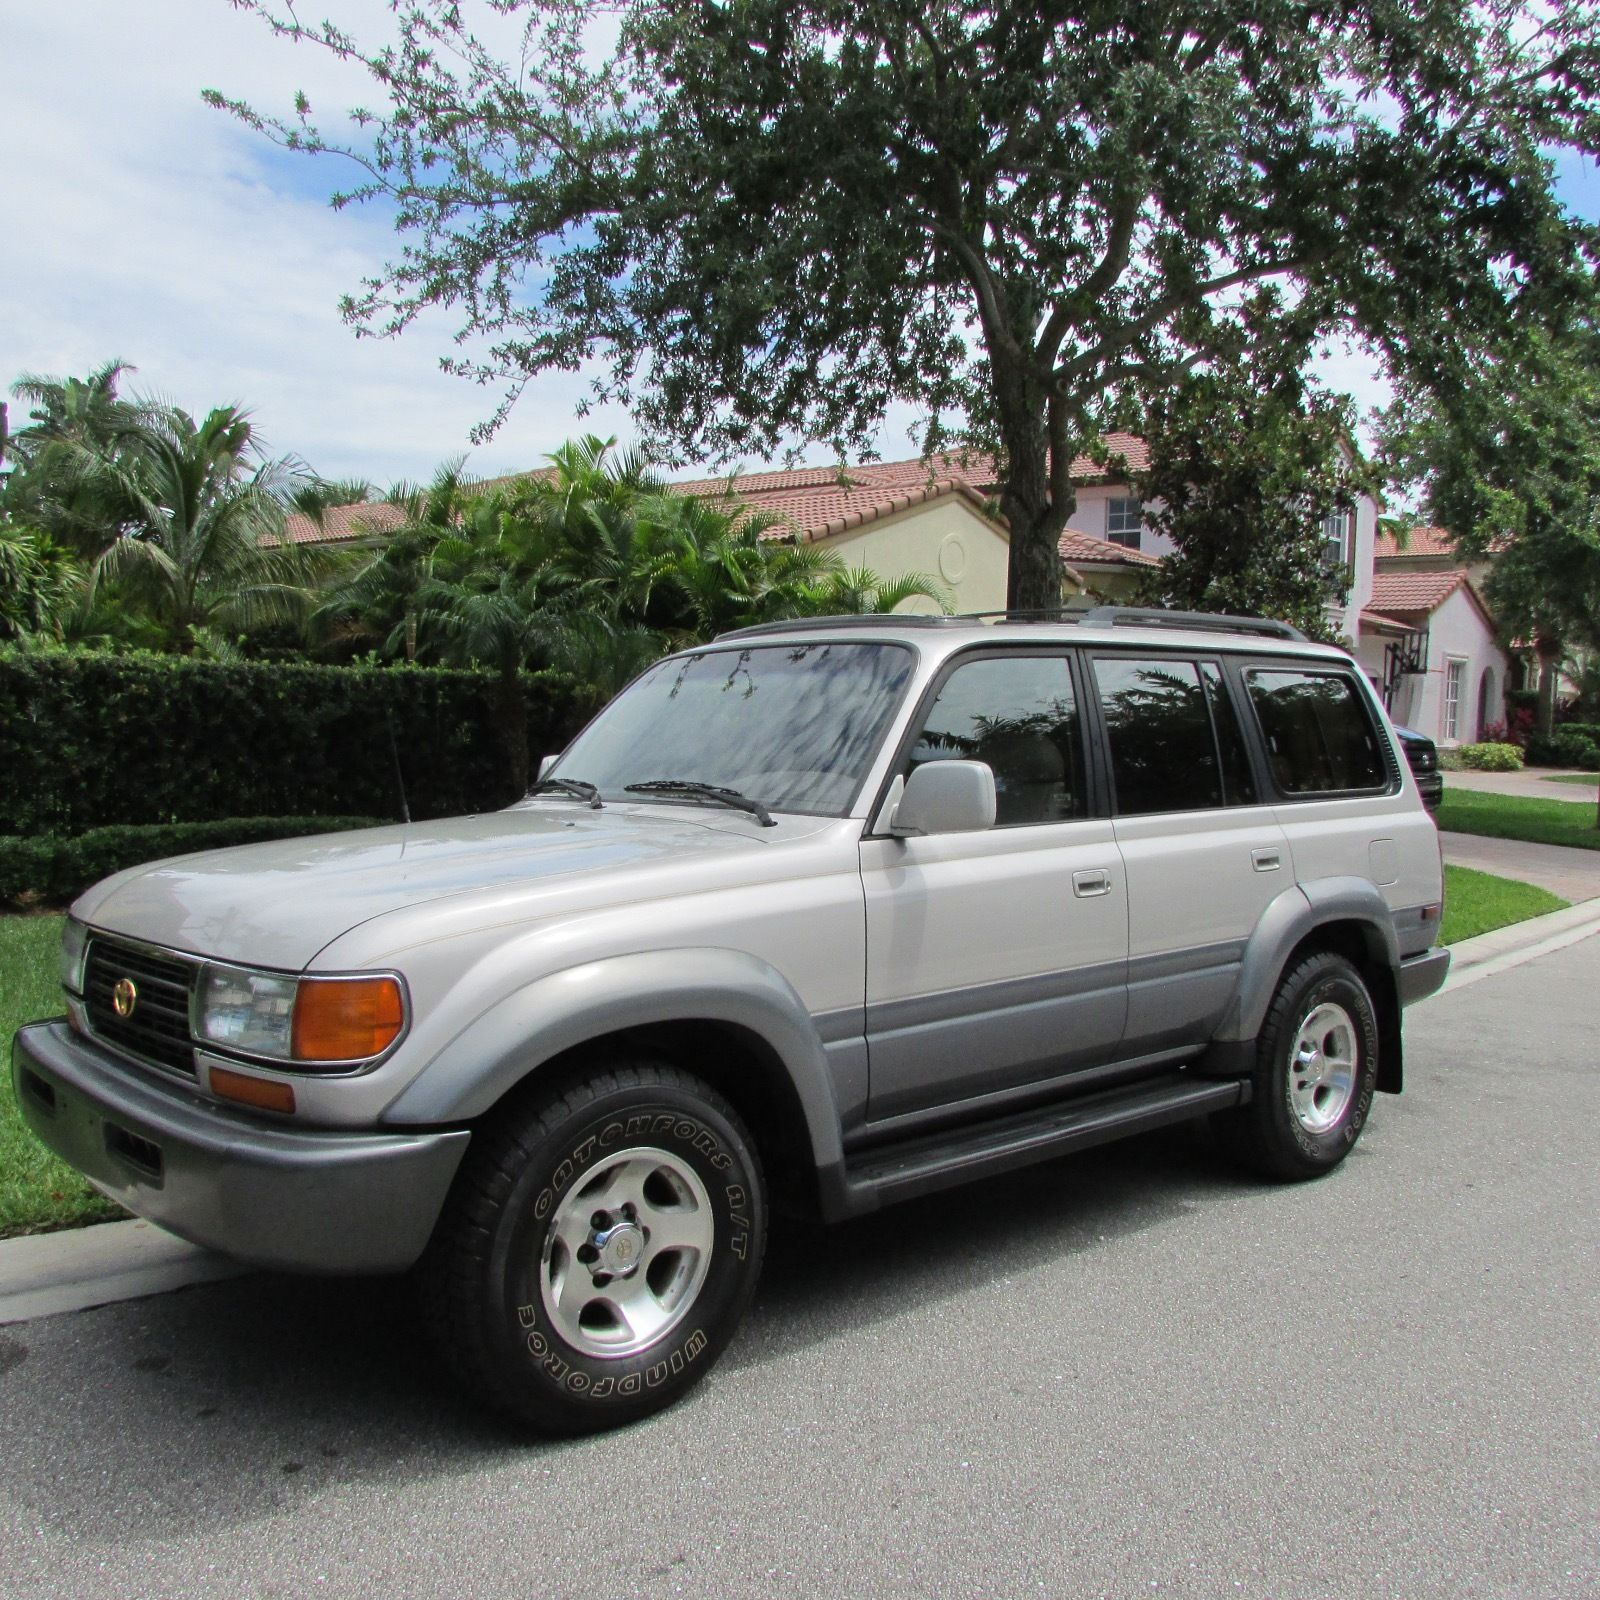 1997 toyota land cruiser with lockers for sale. Black Bedroom Furniture Sets. Home Design Ideas